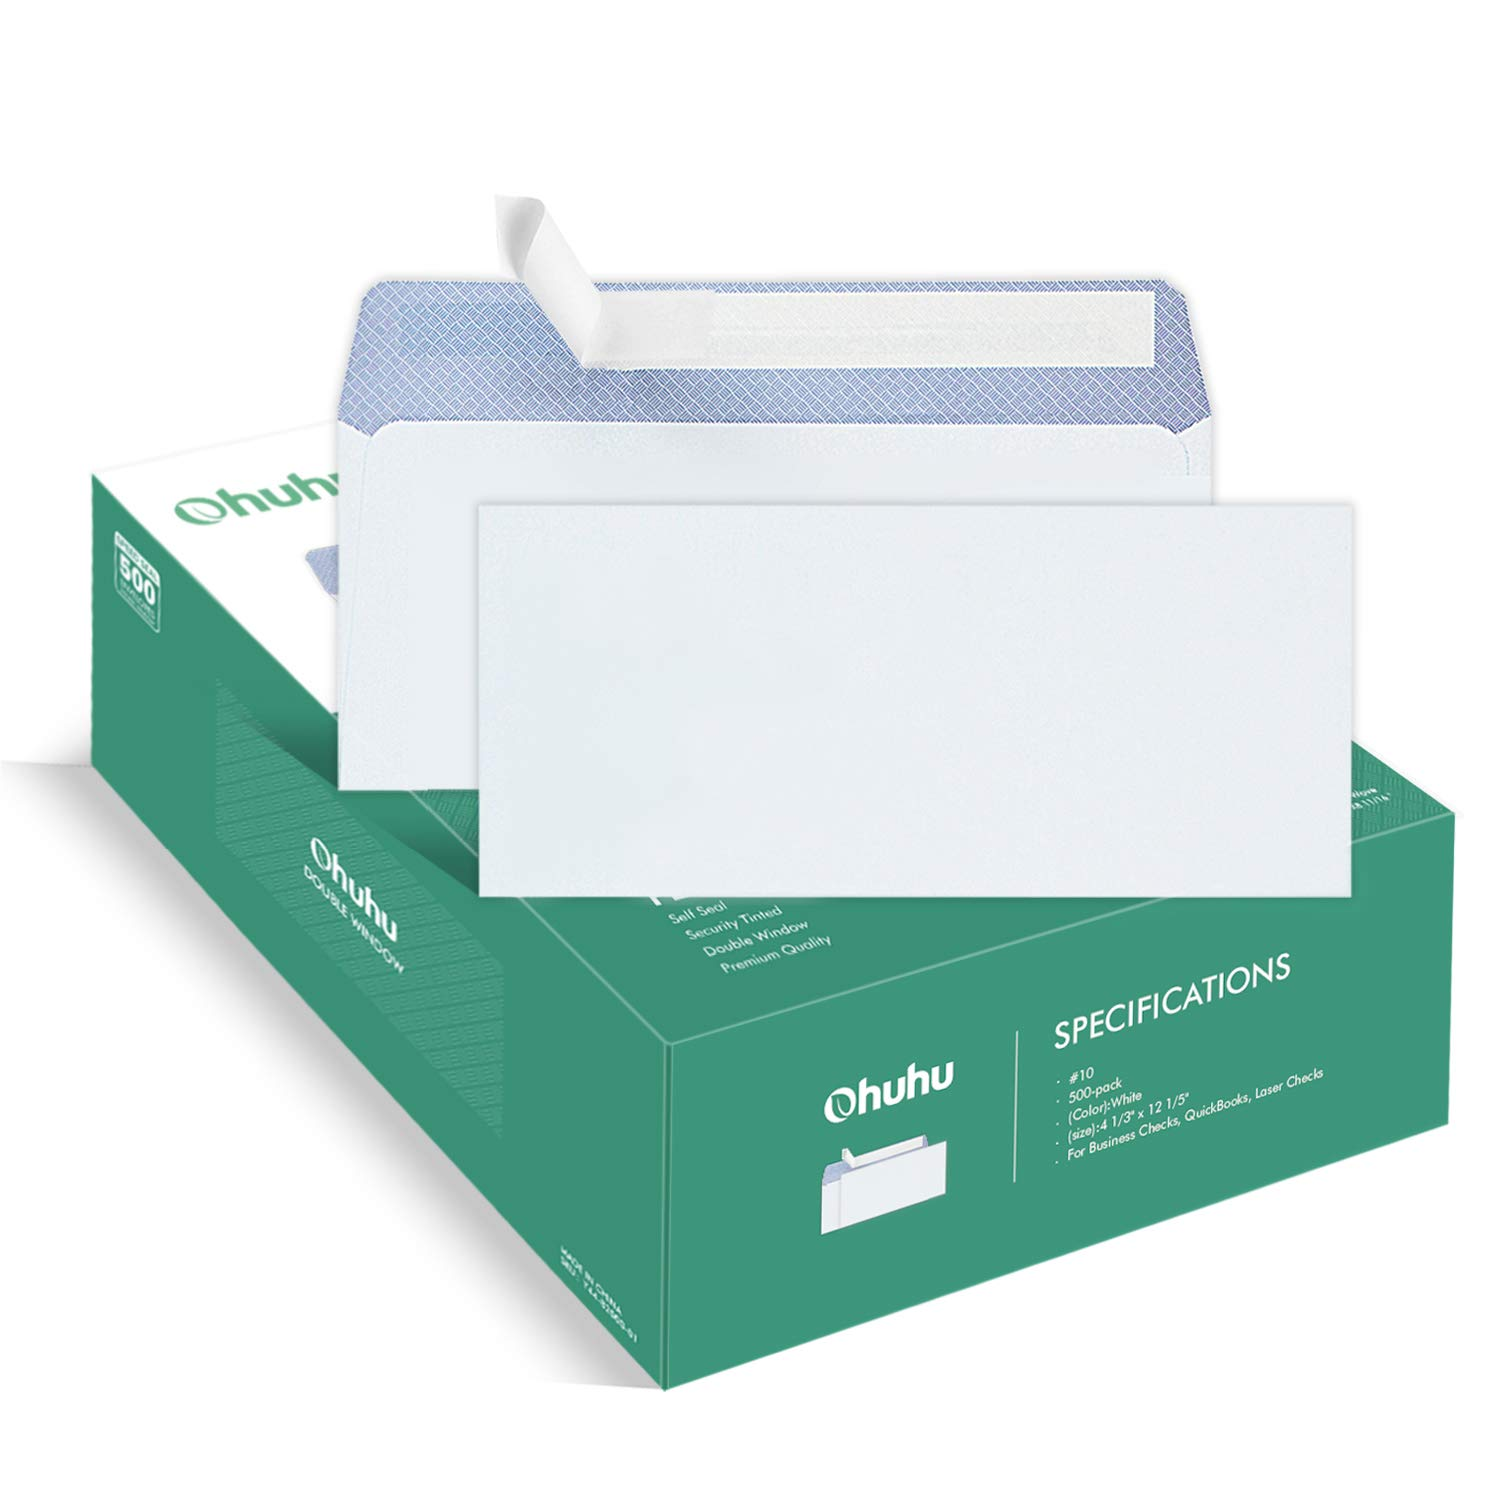 Ohuhu 350#10 Envelopes SELF Seal Business Envelope Windowless Design, Security Tint Pattern for Secure Mailing, Invoices, Statements & Legal Document, 4-1/8 x 9-1/2 inches Mailing Envelopes